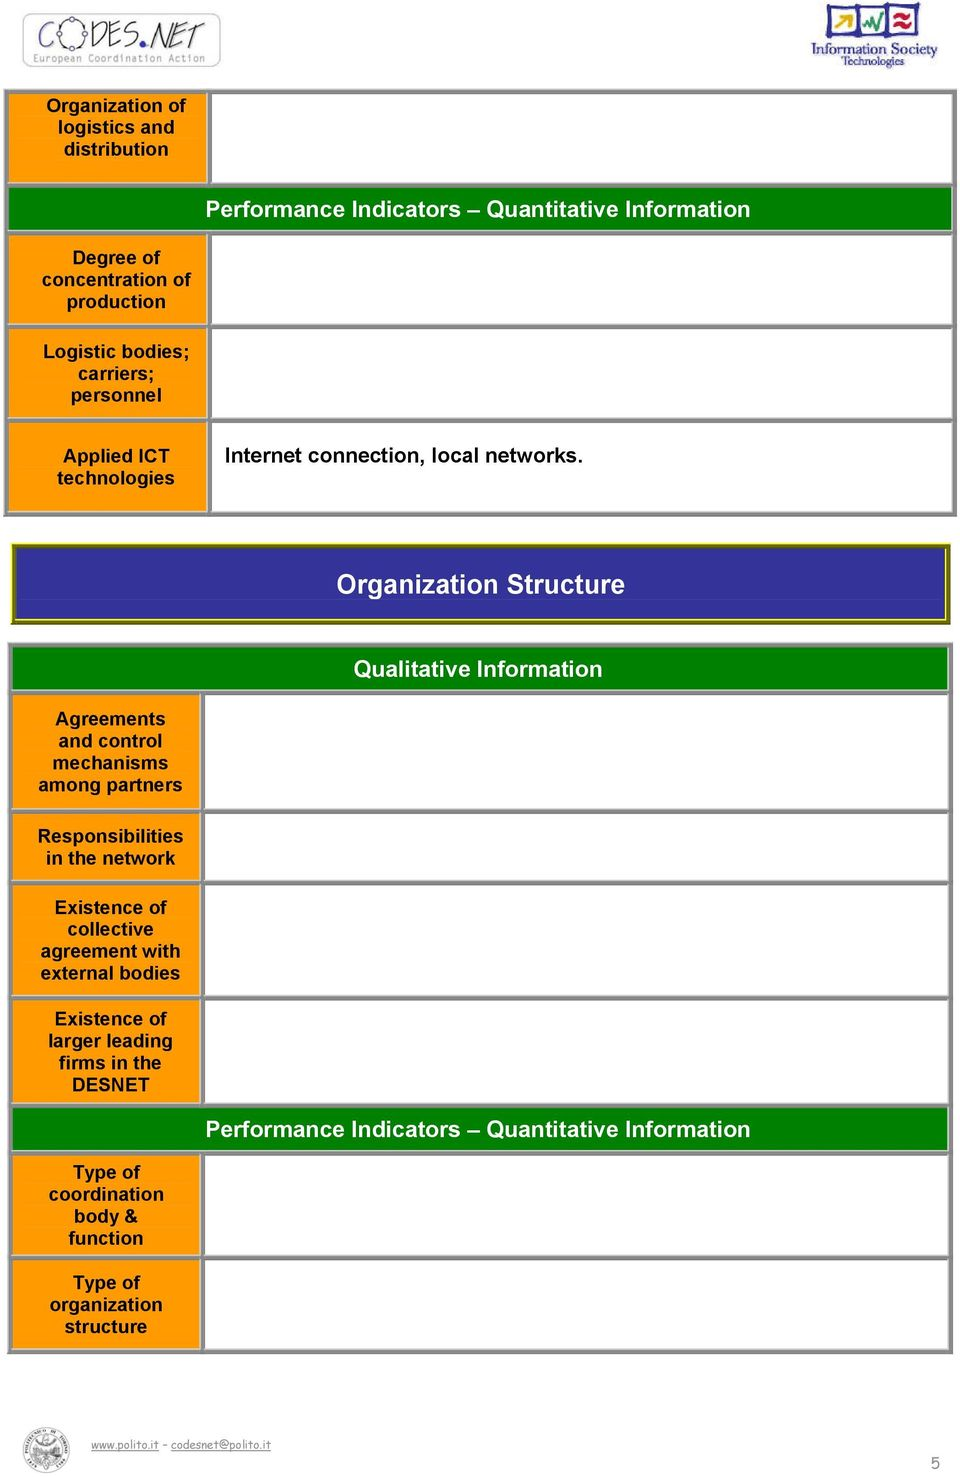 Organization Structure Qualitative Information Agreements and control mechanisms among partners Responsibilities in the